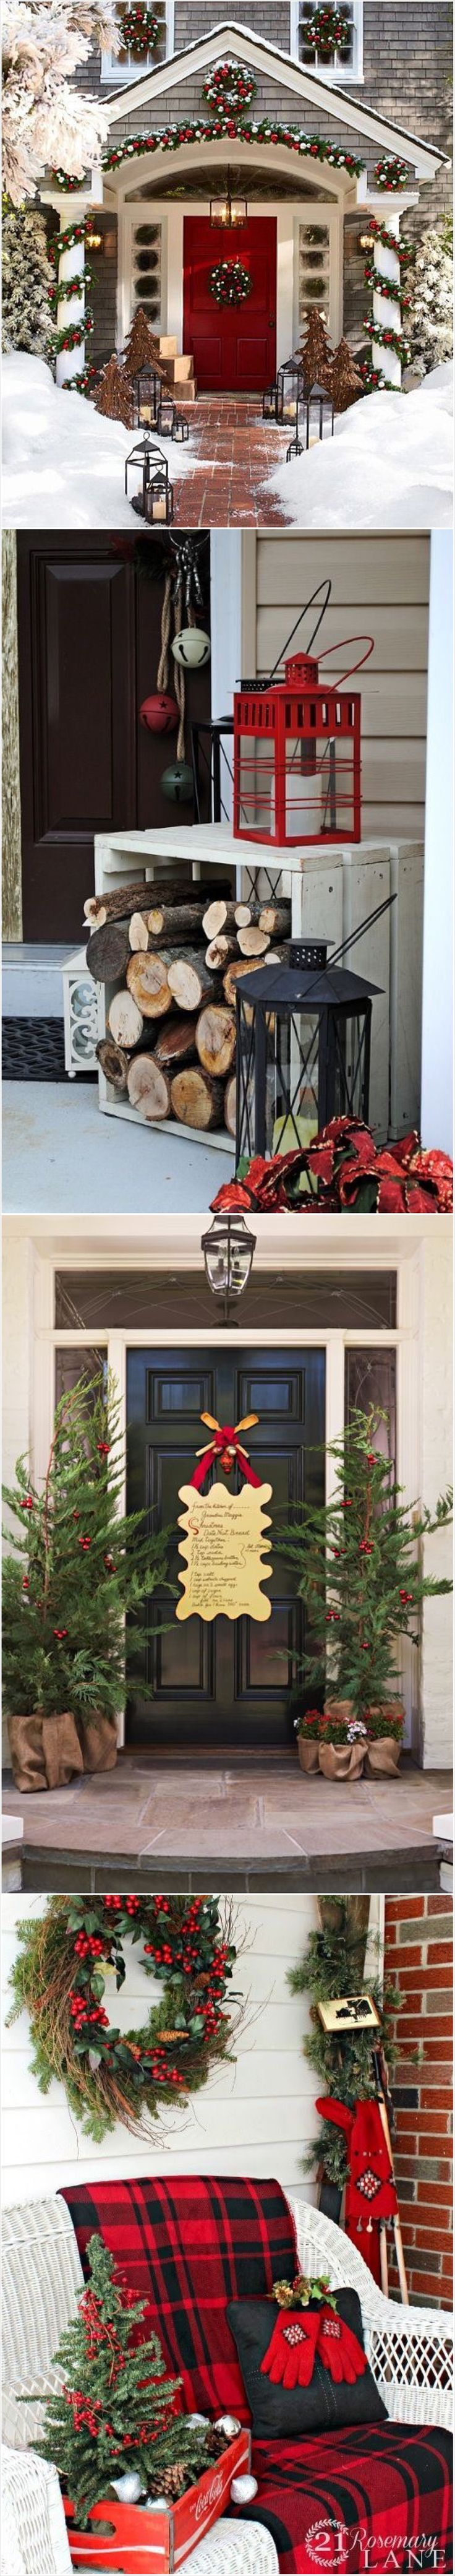 Christmas decorating front porch ideas